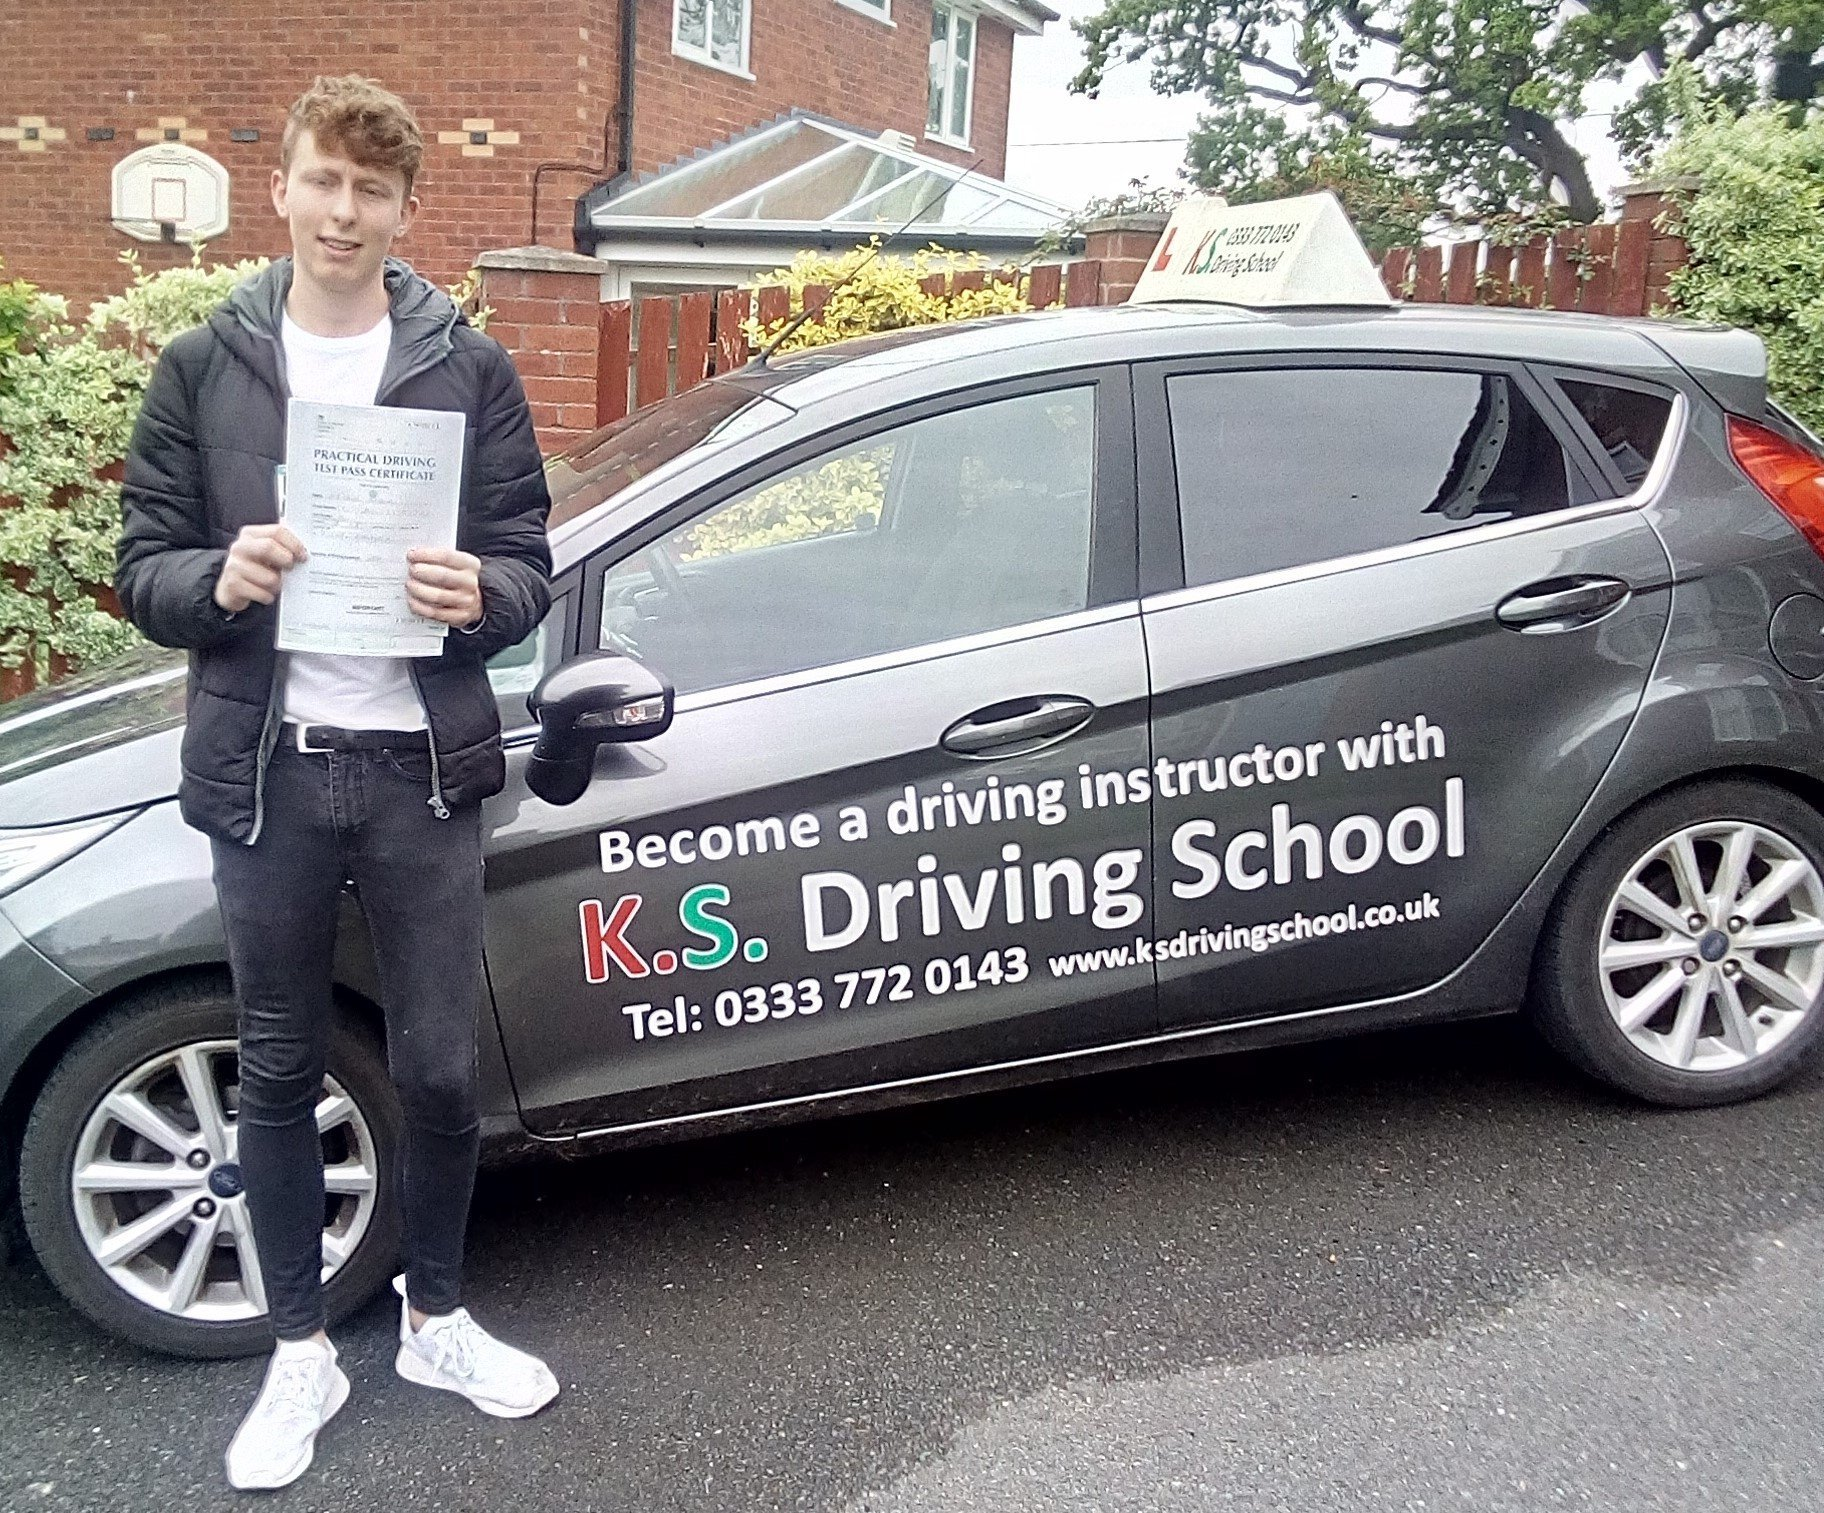 Congratulations on Luke Dennis Roycroft on passing in Whitchurch.